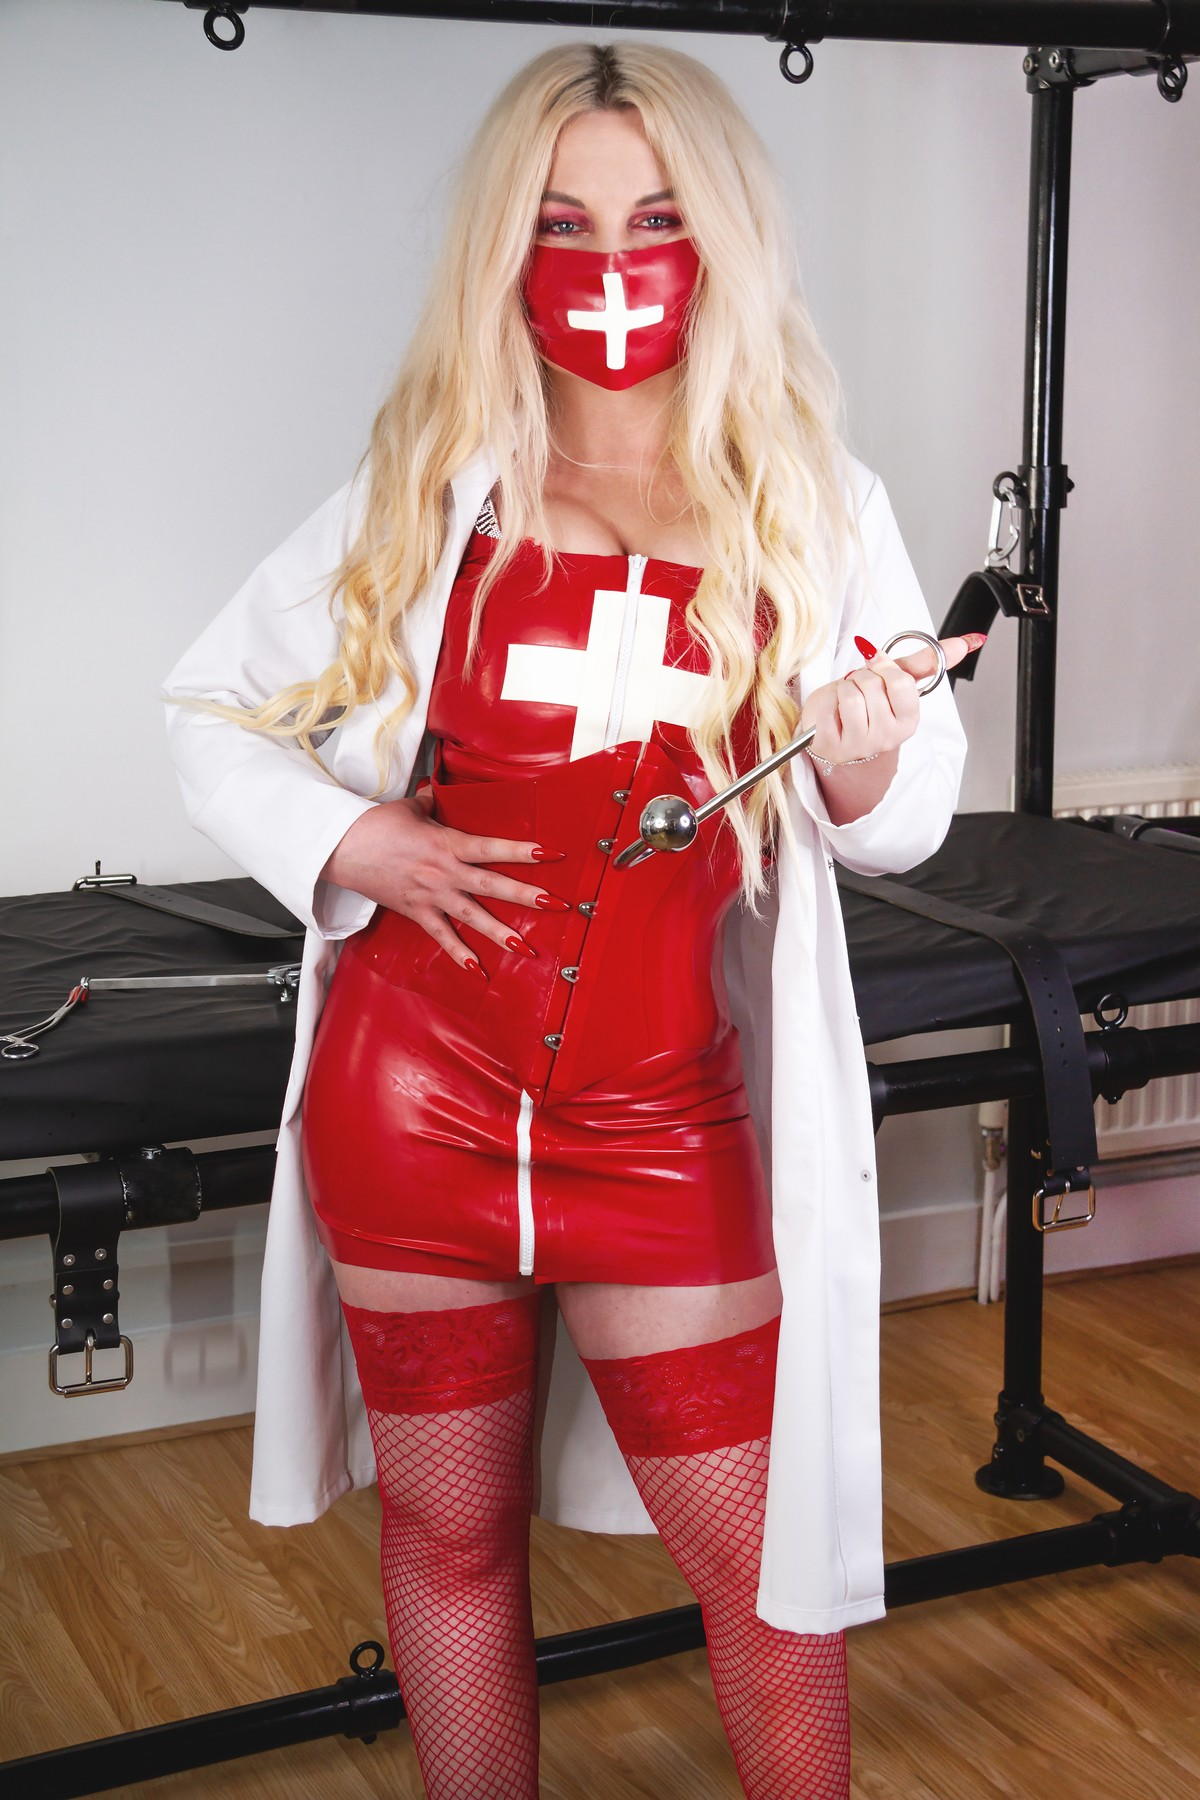 Doctor Alicia waiting to take your fetish temperature